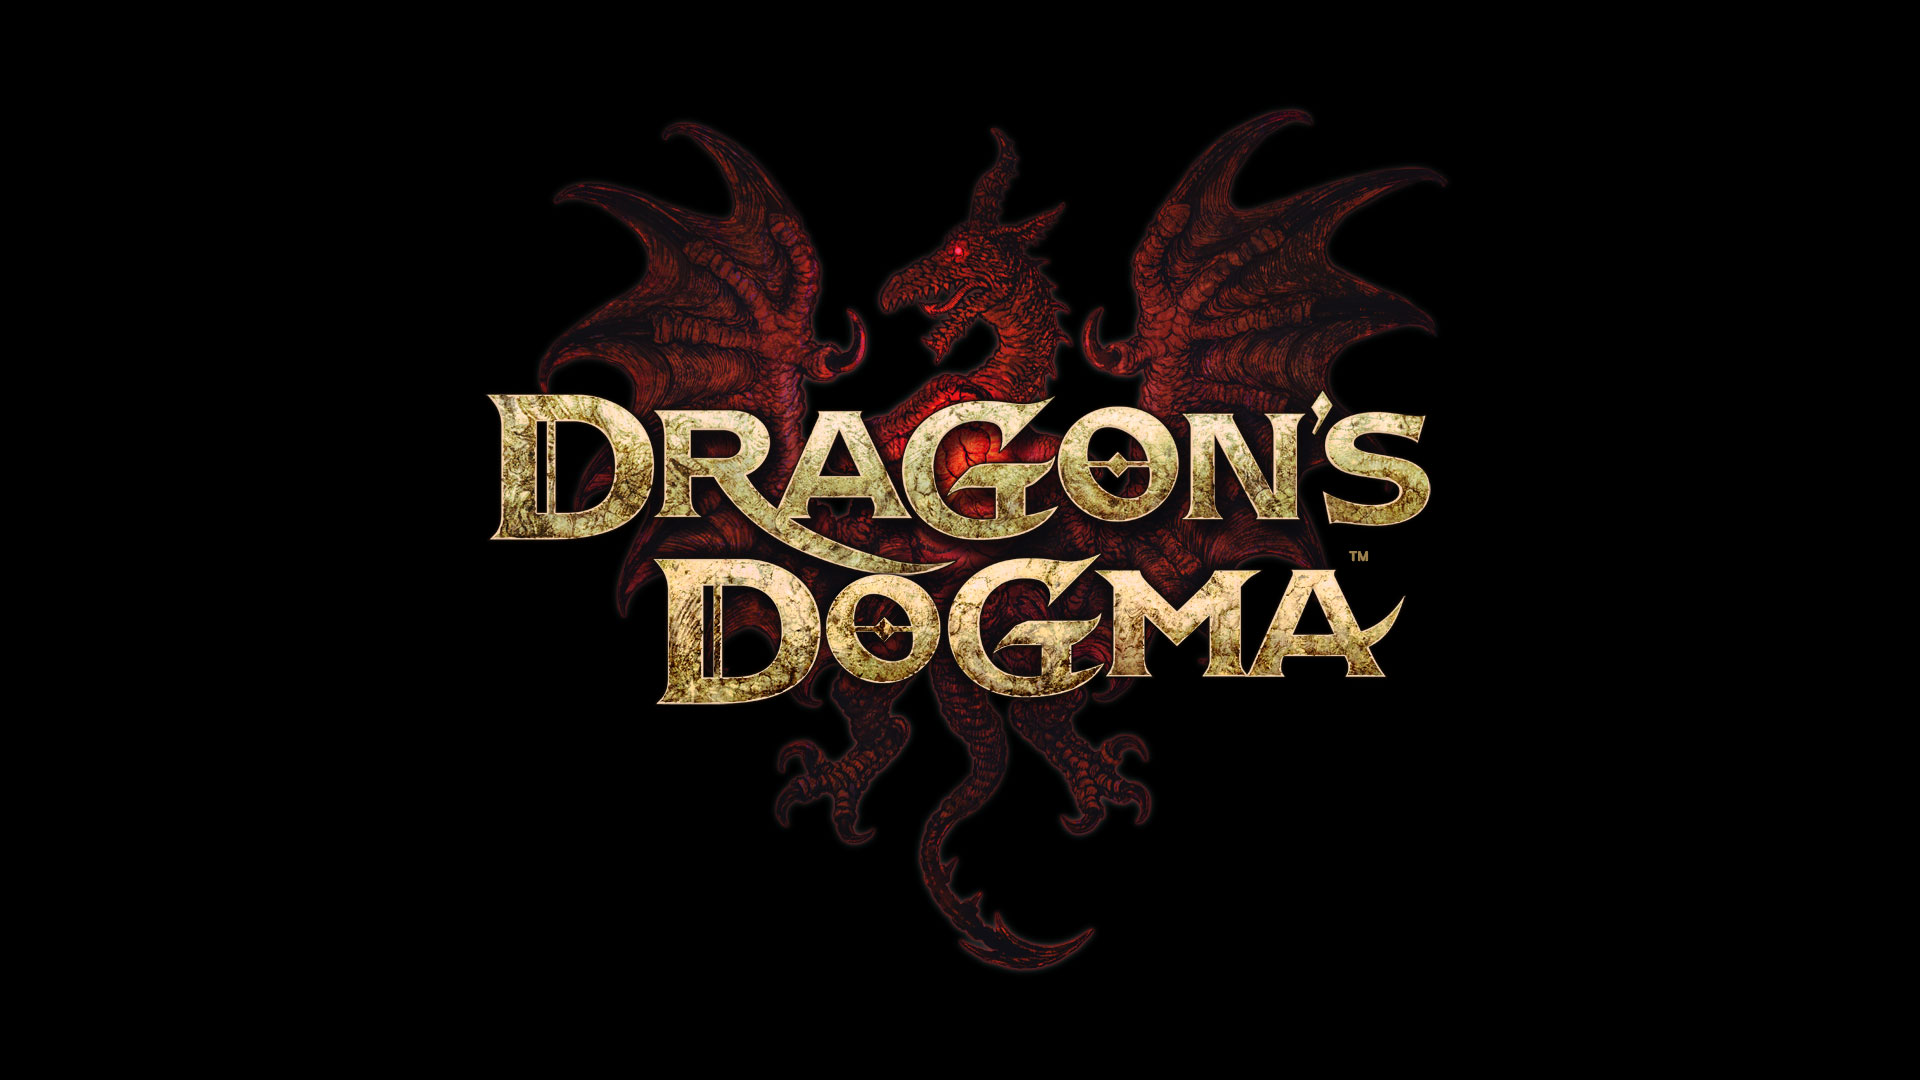 Dragons Dogma Wallpapers in HD Page 2 1920x1080